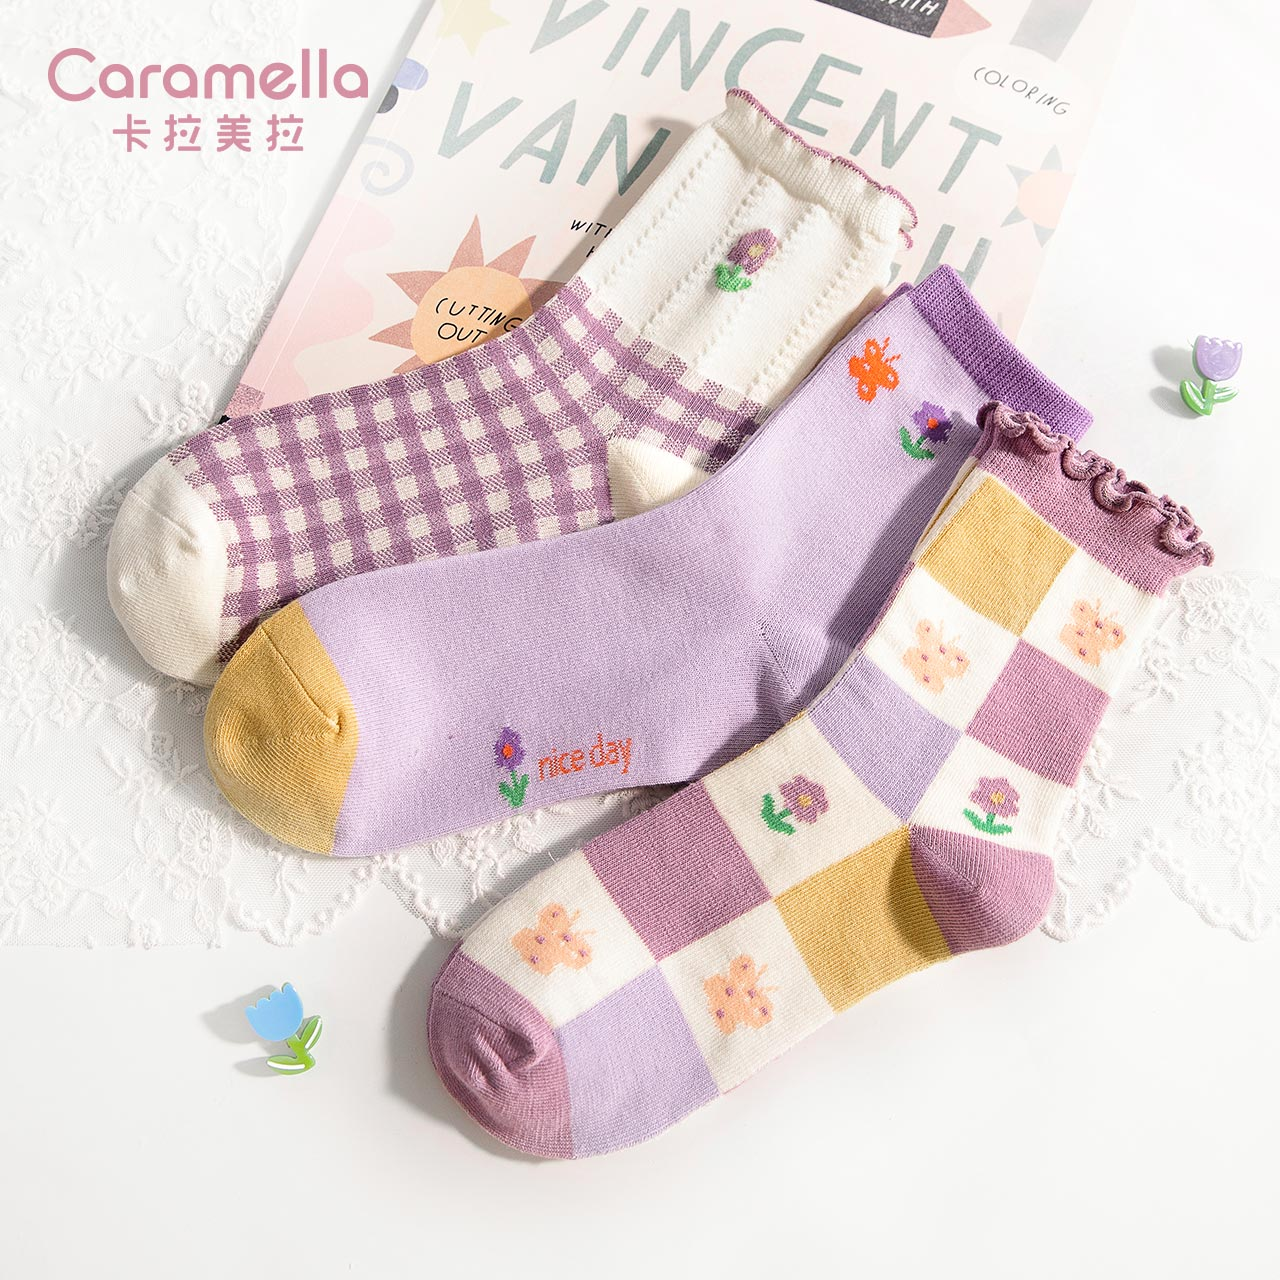 2021 Caramella New Pattern Women Socks 3pairs/lot Spring Summer Cotton Funny Cartoon Squirrel Lace Flower